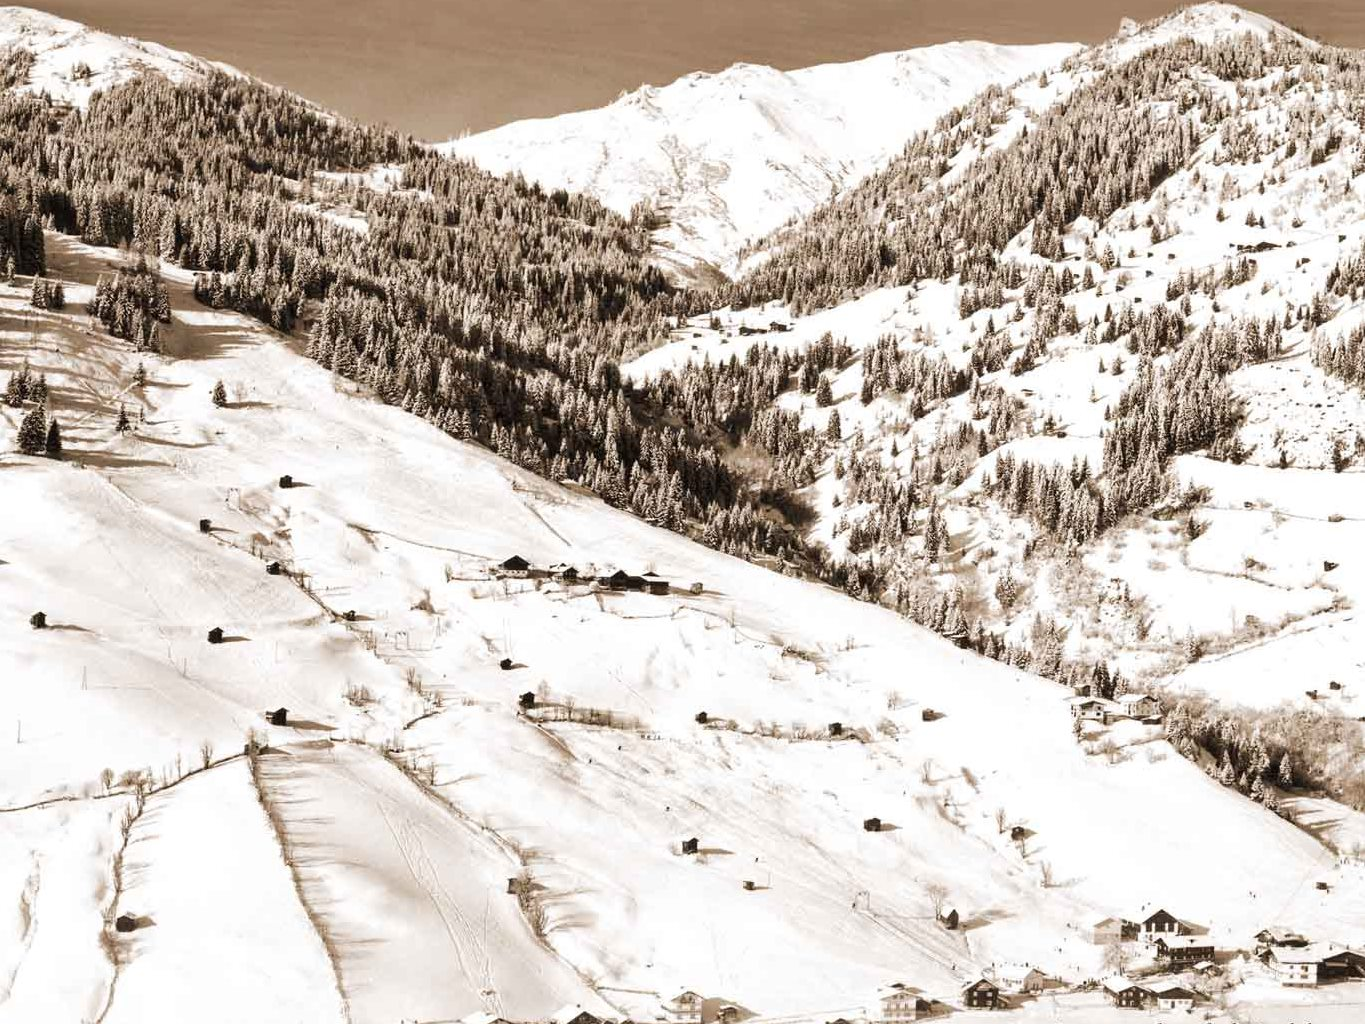 Skigebiet Großarltal Ende 1960 - Bild: Hubert Heigl, www.glasheigl.at